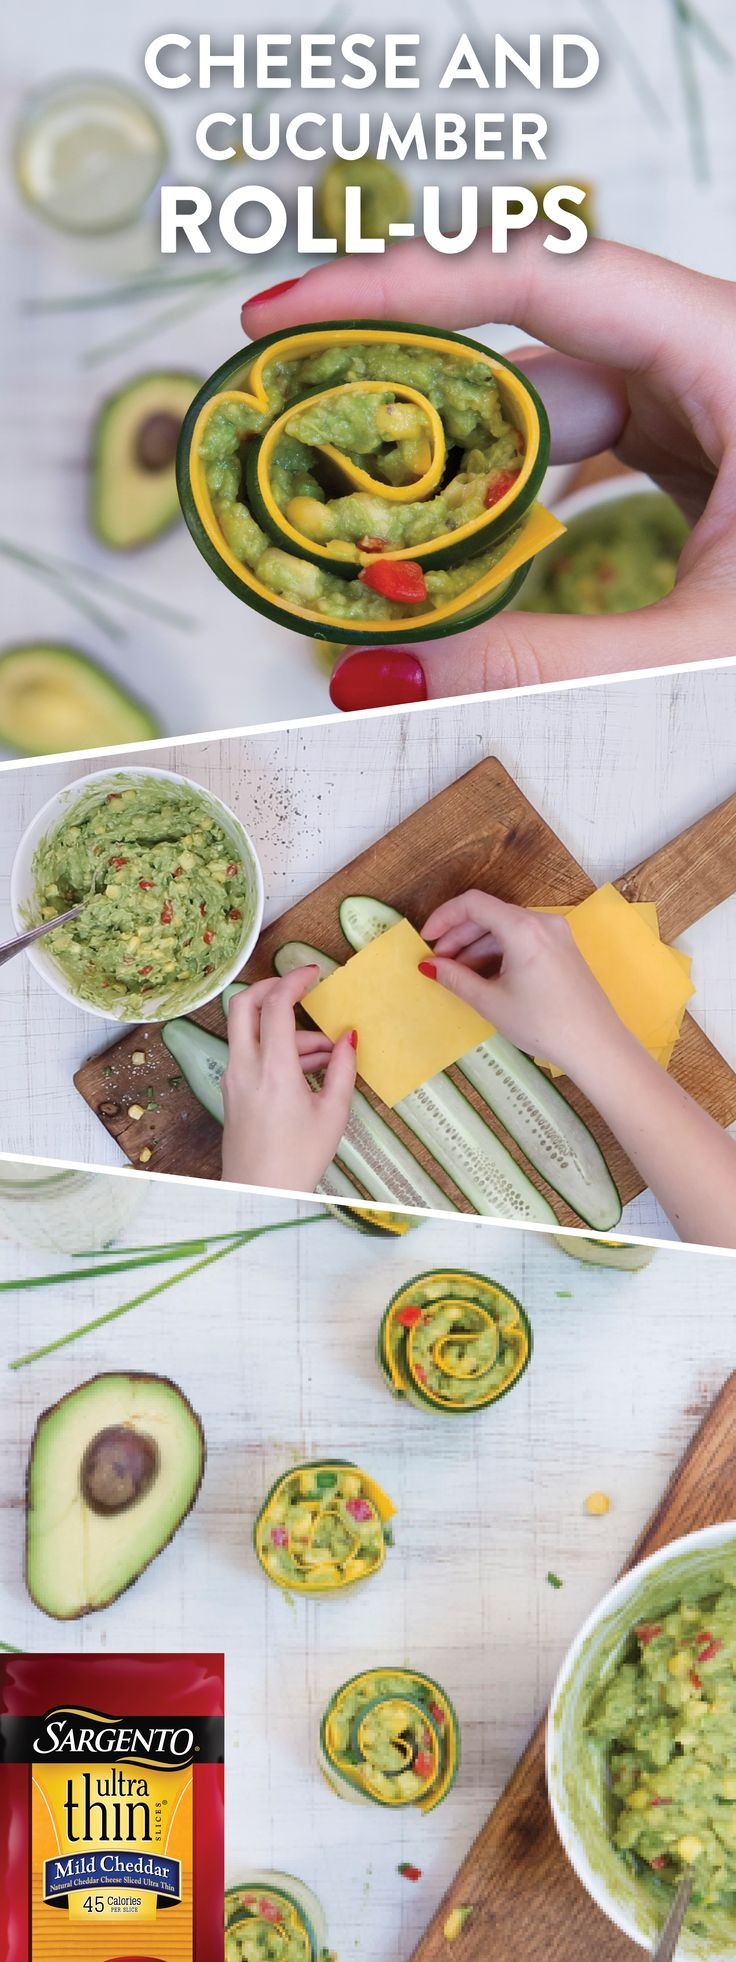 Looking for a summer appetizer recipe that is full of flavor and light? Check out our summer spin on the classic rollup appetizer. We've layered zesty corn guacamole between sliced cucumbers and our creamy Ultra Thin® Medium Cheddar slices, which have 45 calories per slice! This tasty appetizer is sure to be one of your new backyard BBQ favorites. To see the full recipe, go to sargento.com.